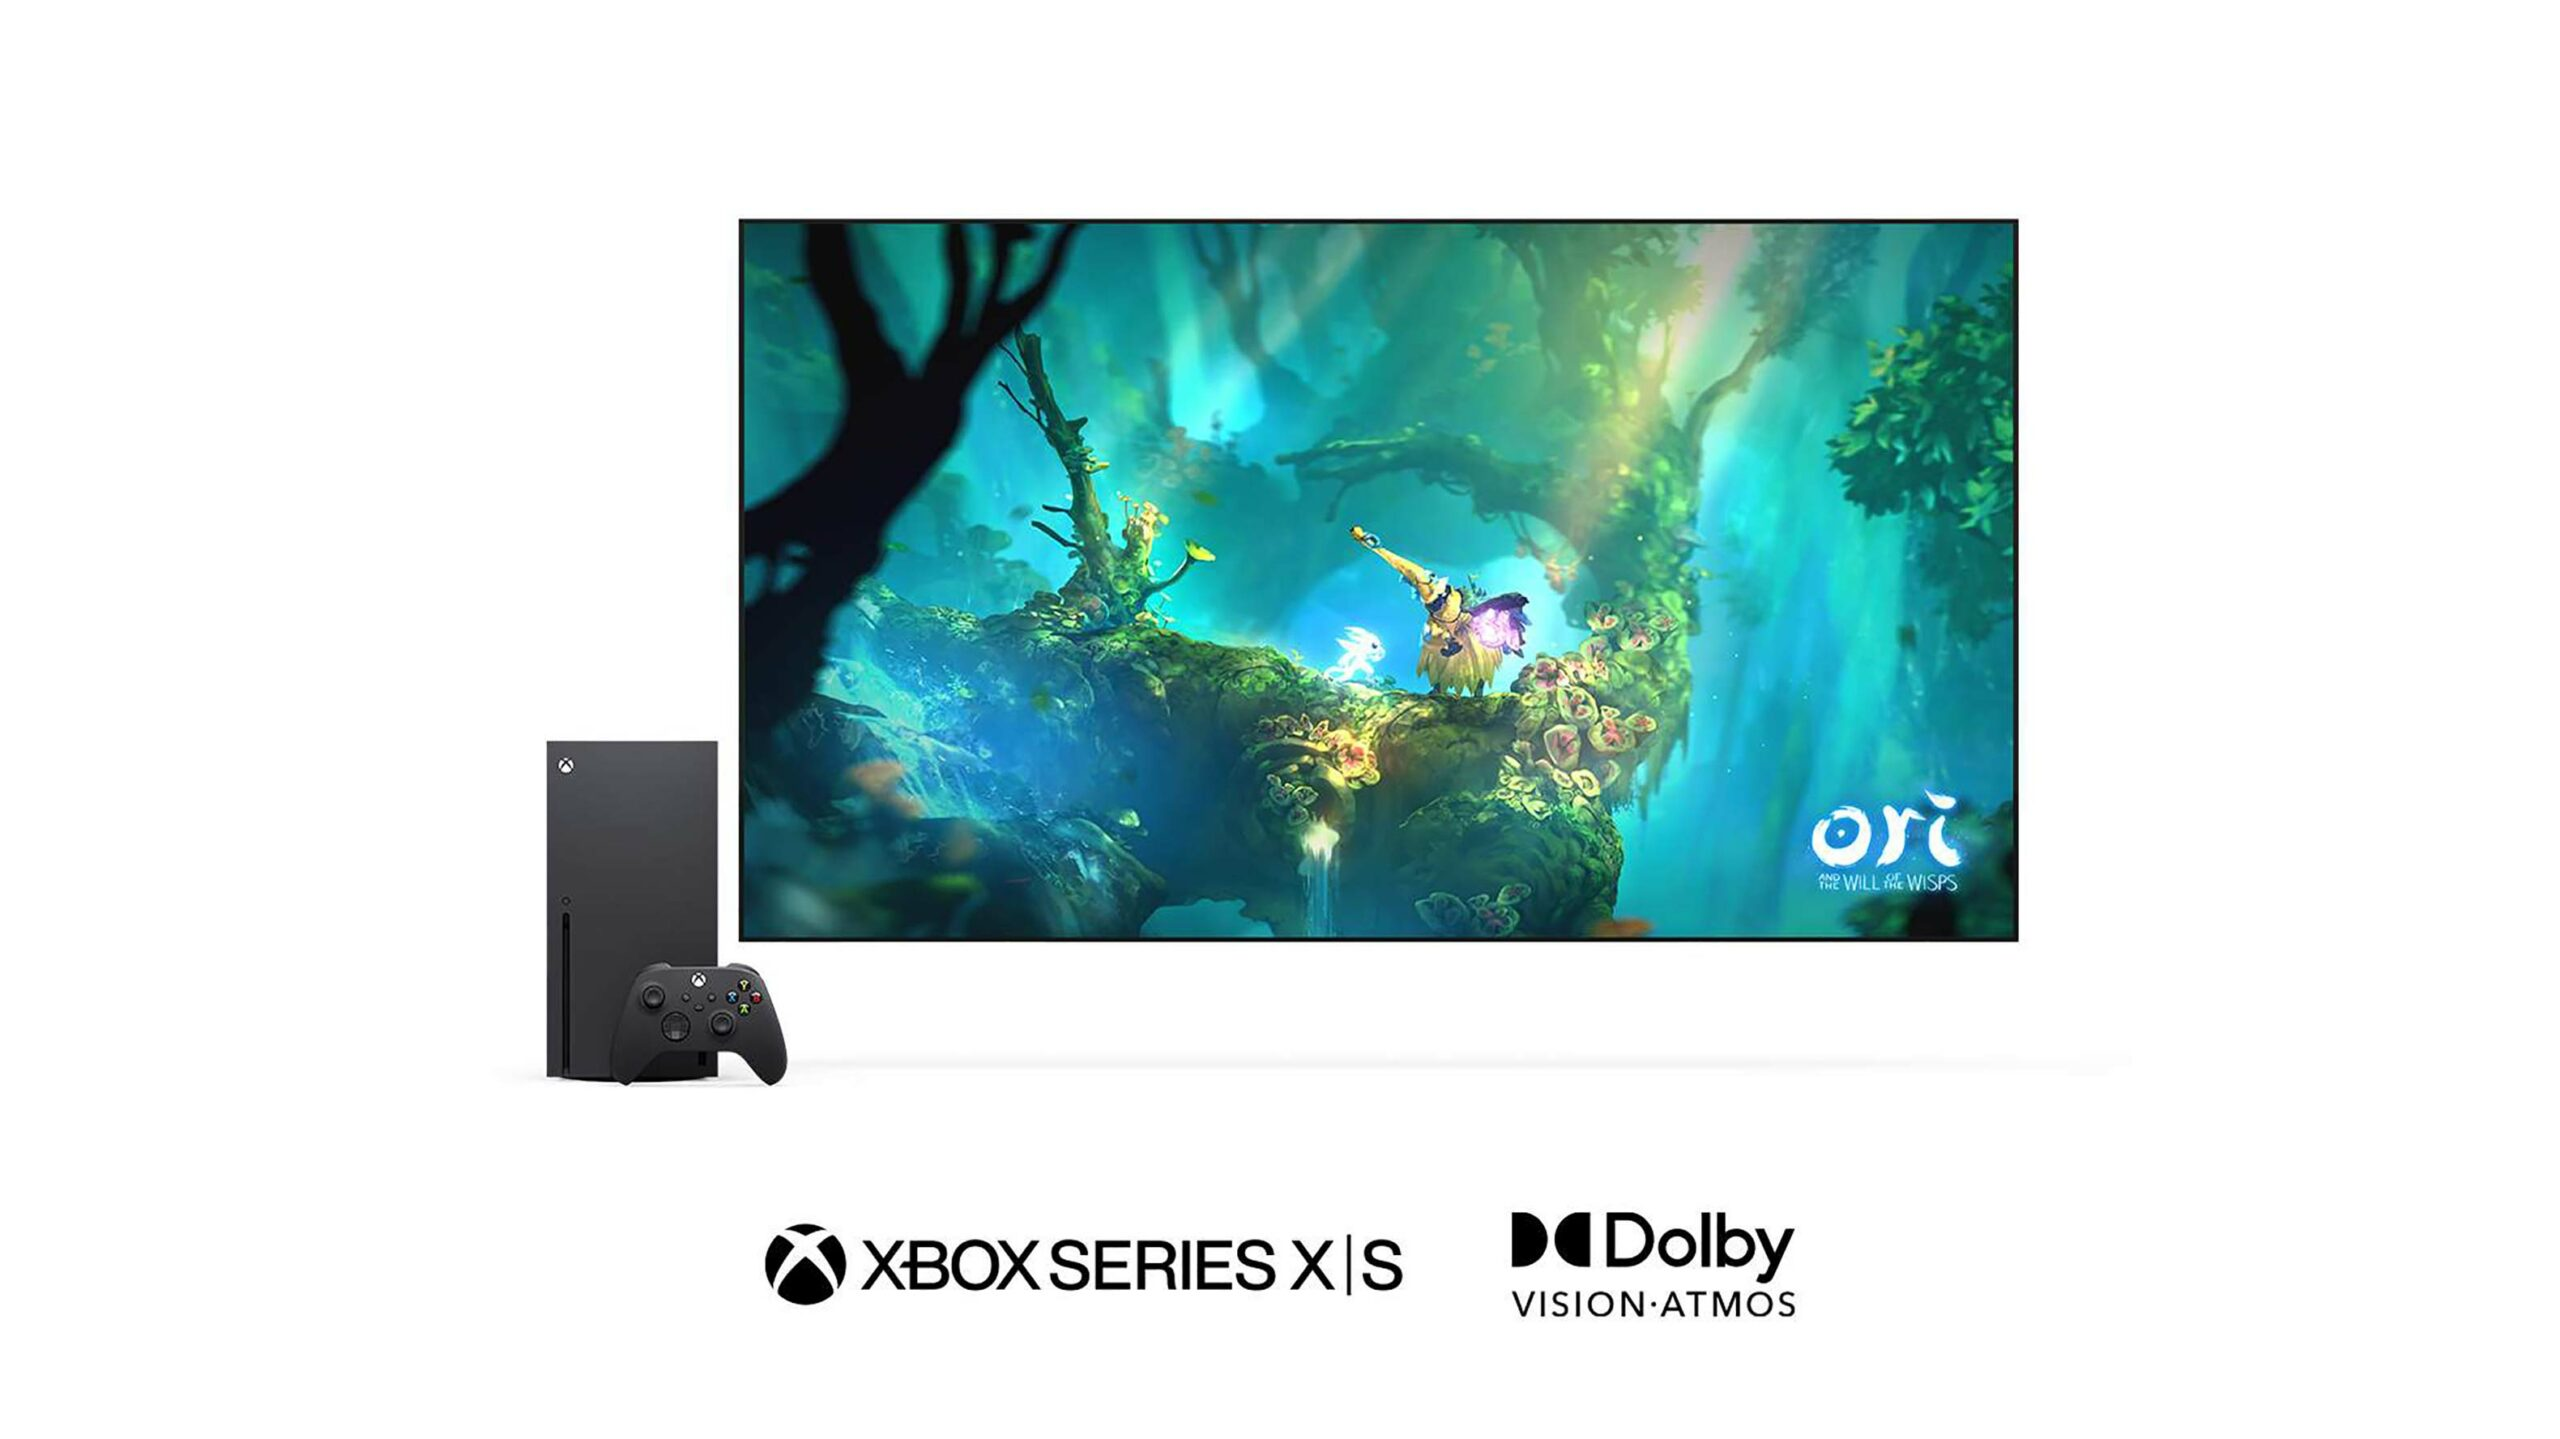 Xbox Series X/S Dolby Vision